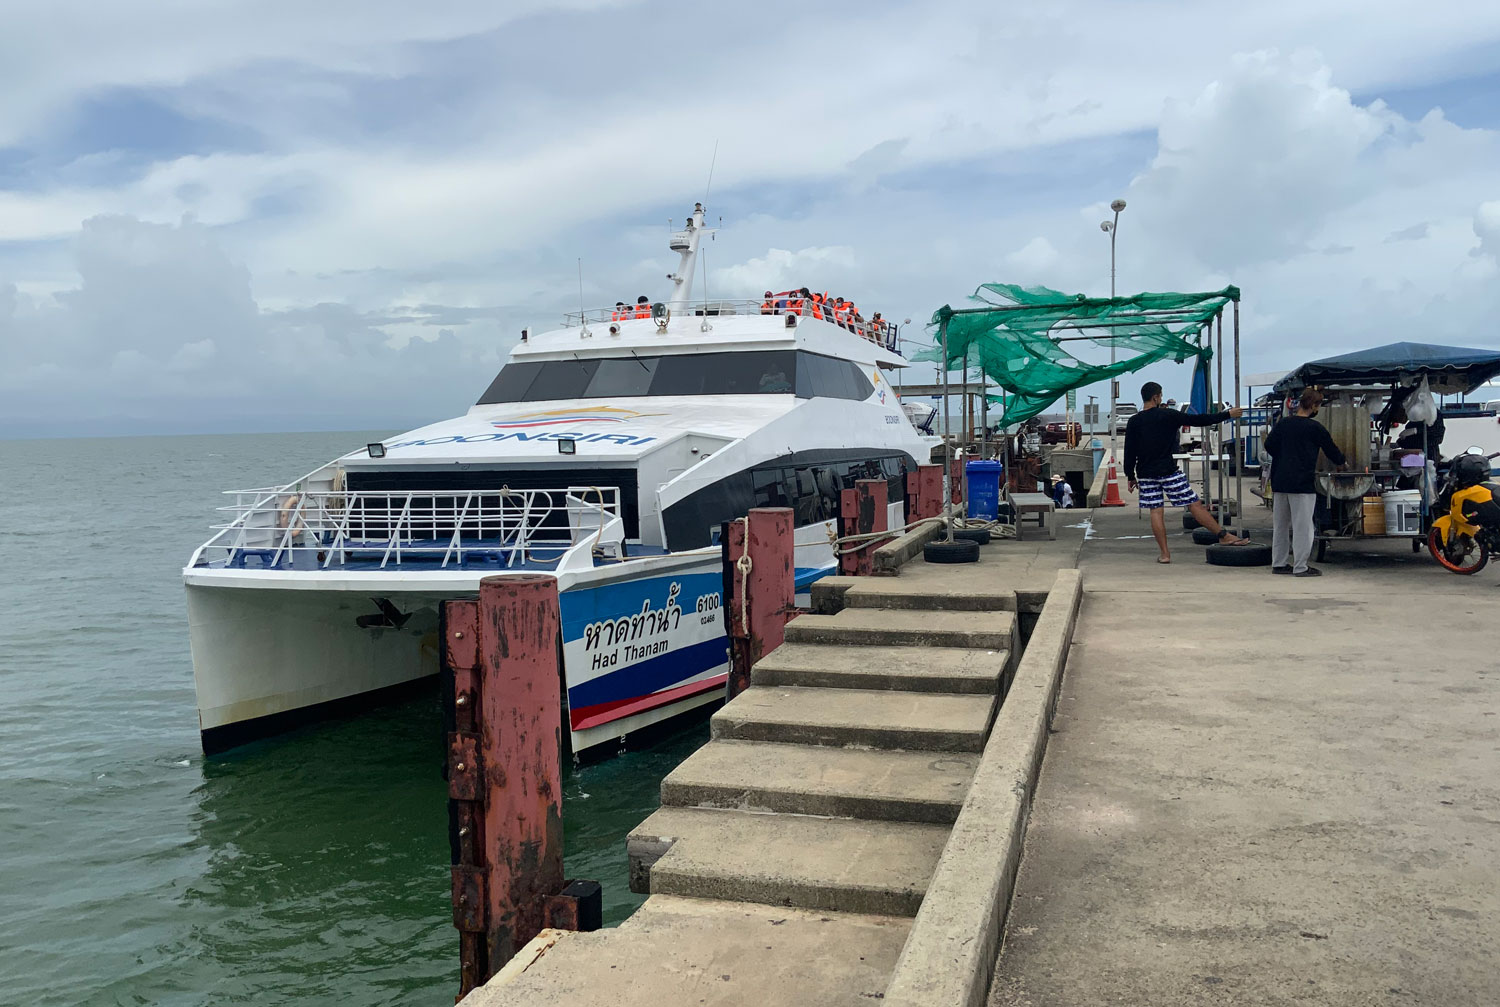 Only a small number of tourists stepped off the ferry at Koh Chang, a popular island in Trat, on Saturday. (Photo: Jakkrit Waewkraihong)